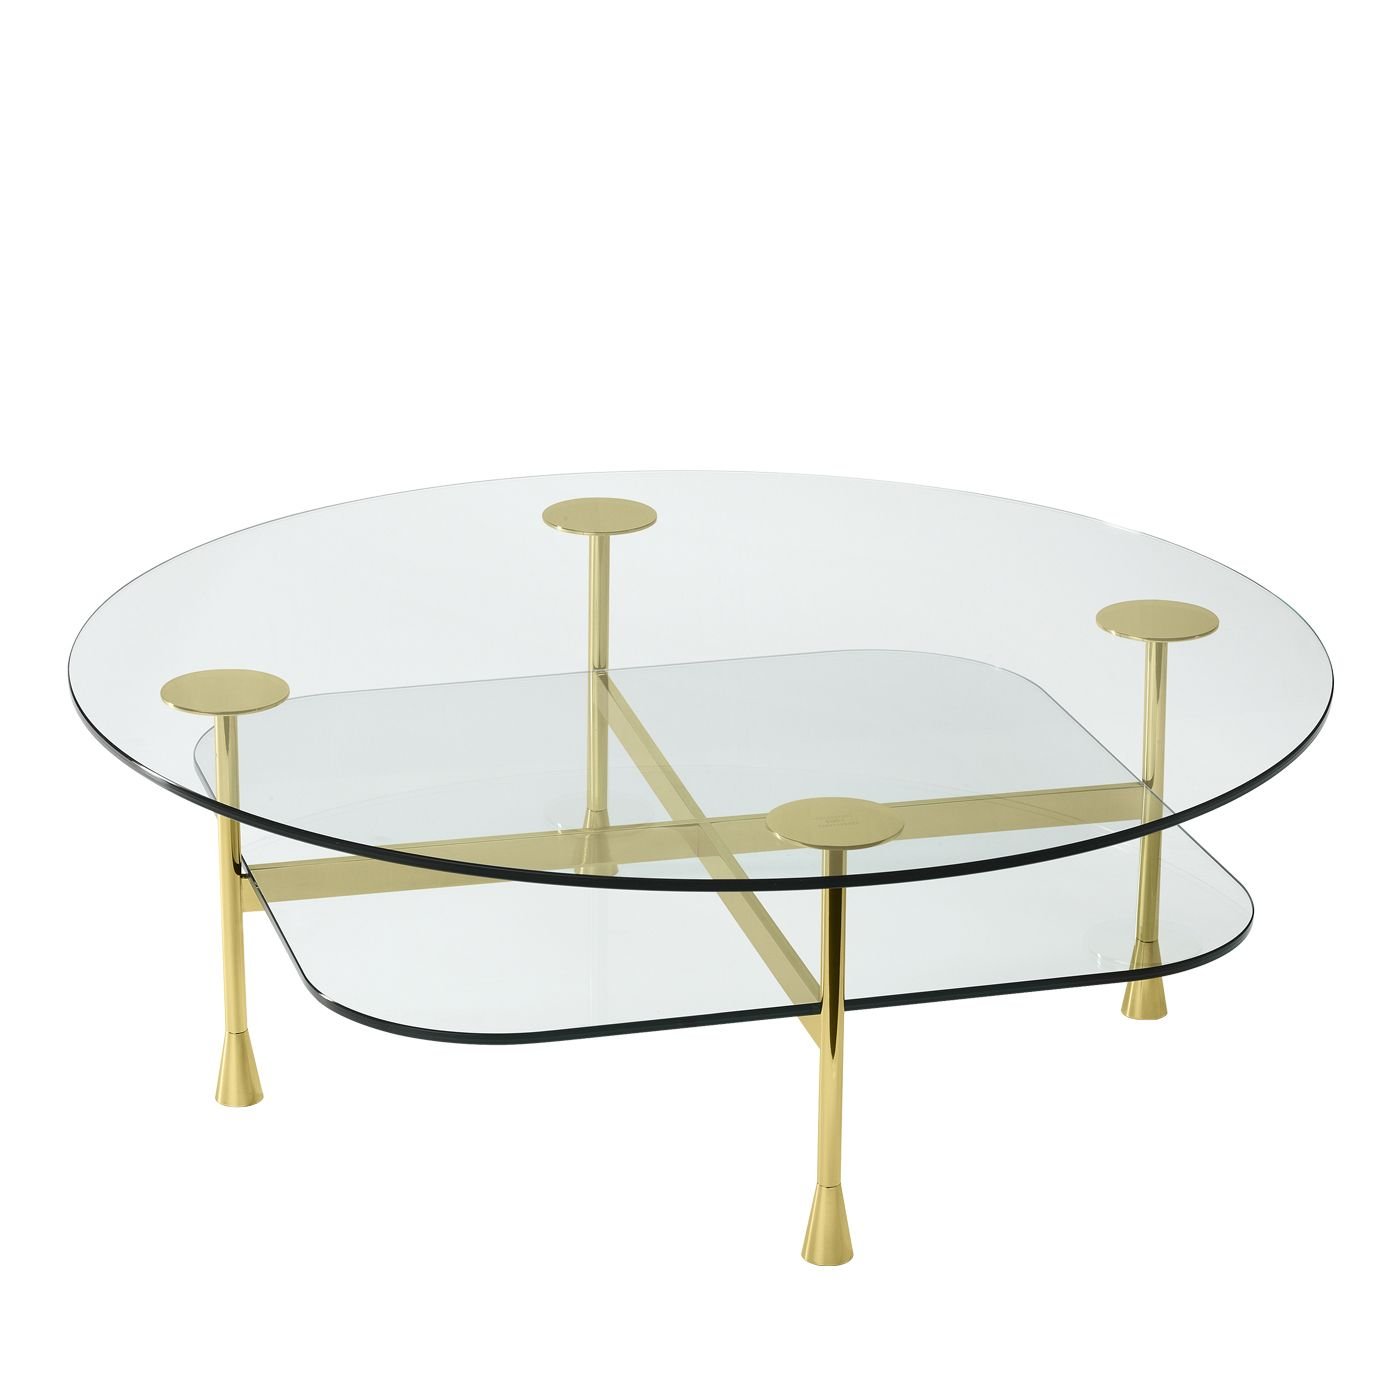 Da Vinci Coffee Table In Crystal And Polished Brass By Richard Hutten In 2021 Coffee Table Vintage Side Table Table [ 1400 x 1400 Pixel ]